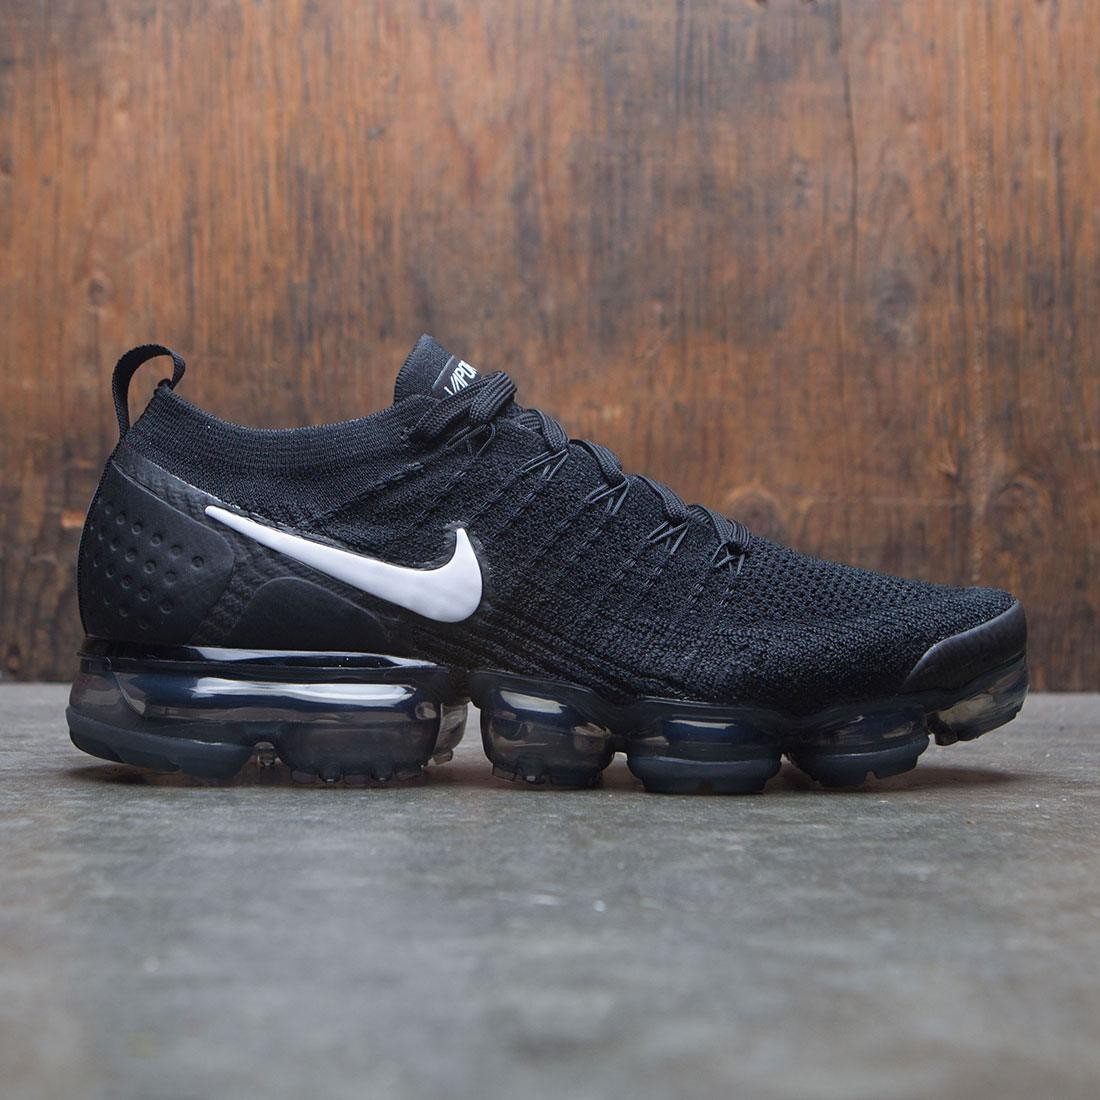 1b6940495a19 nike men air vapormax flyknit 2 black white dark grey metallic silver